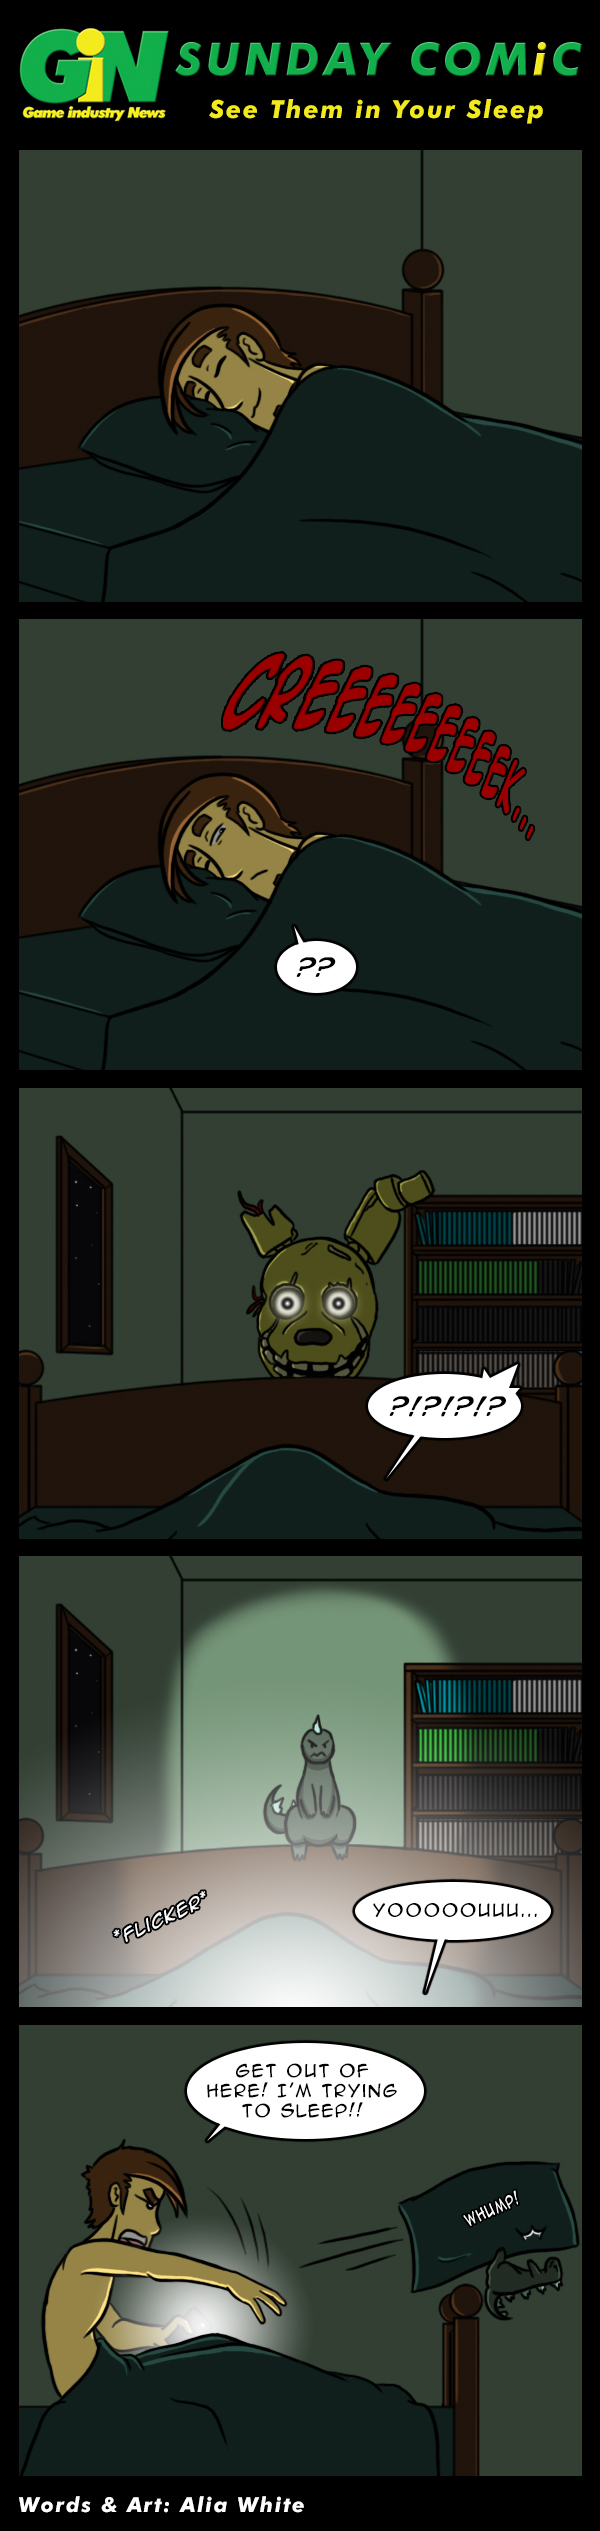 five-nights-at-freddy's-3-fnaf3